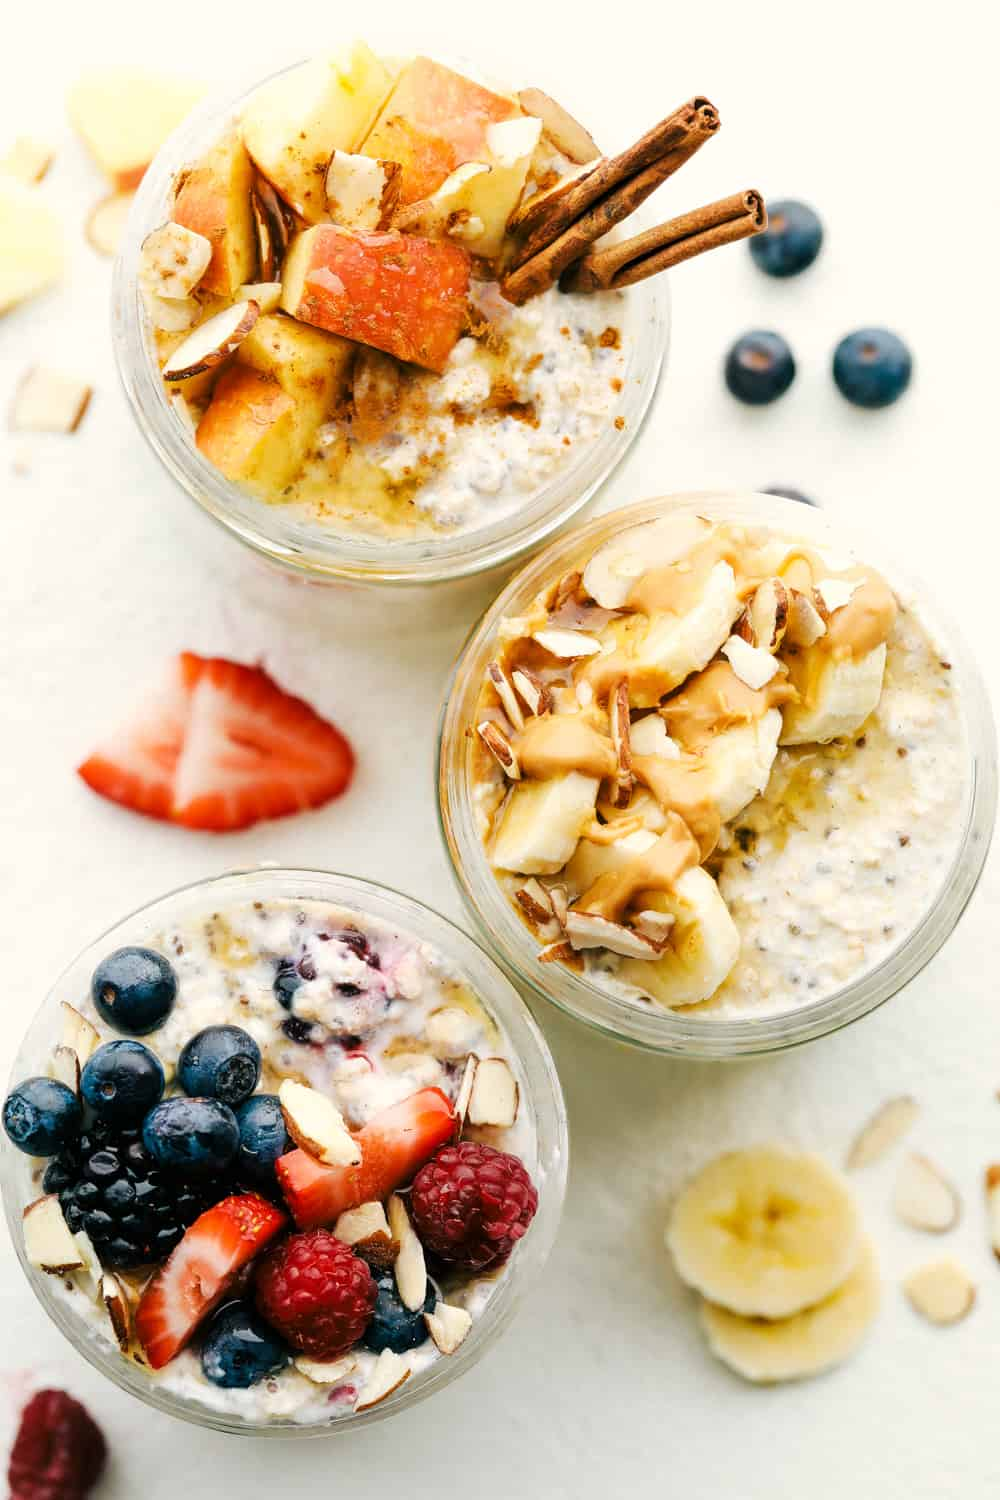 Overnight oats with different toppings and flavor combinations.